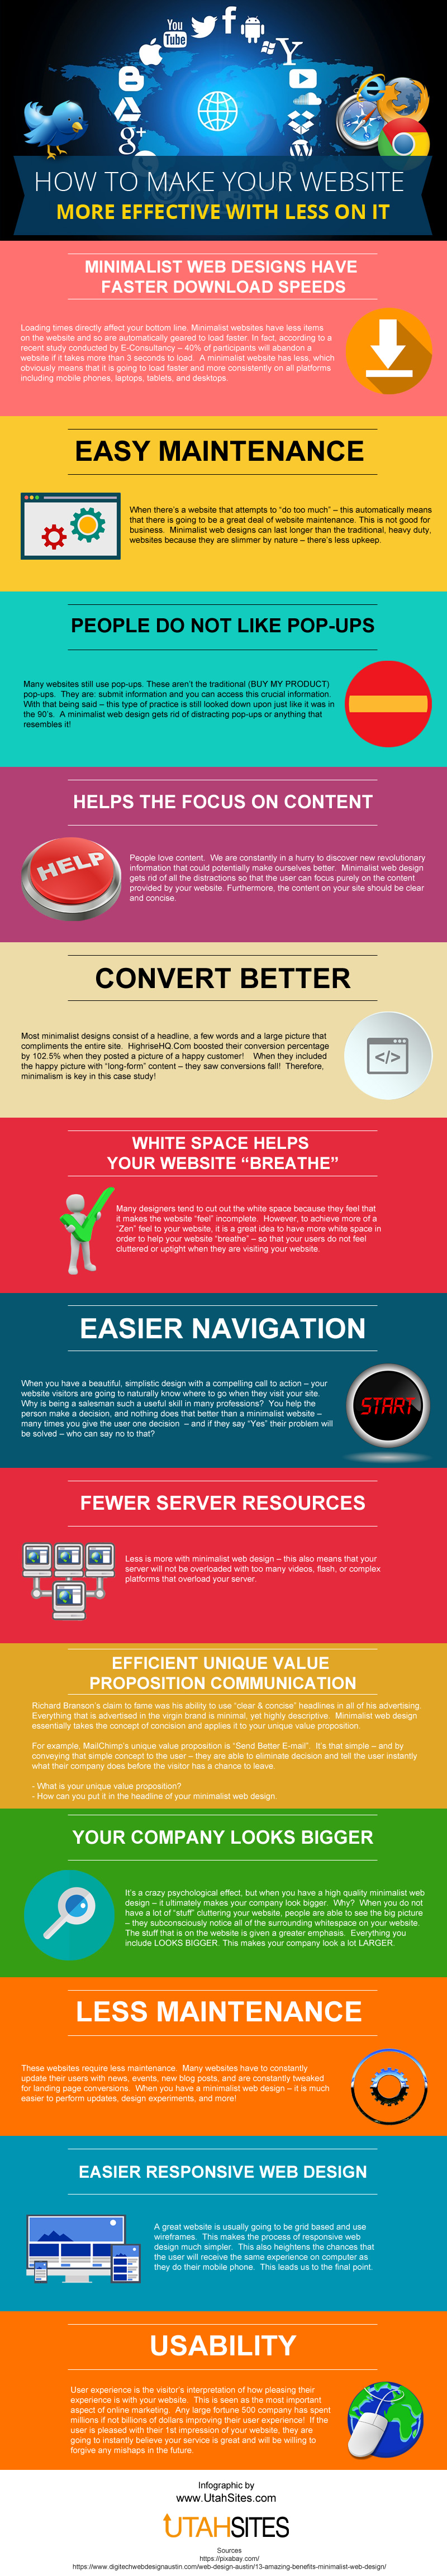 How to Make Your Website More Effective with Less on it [Infographic]